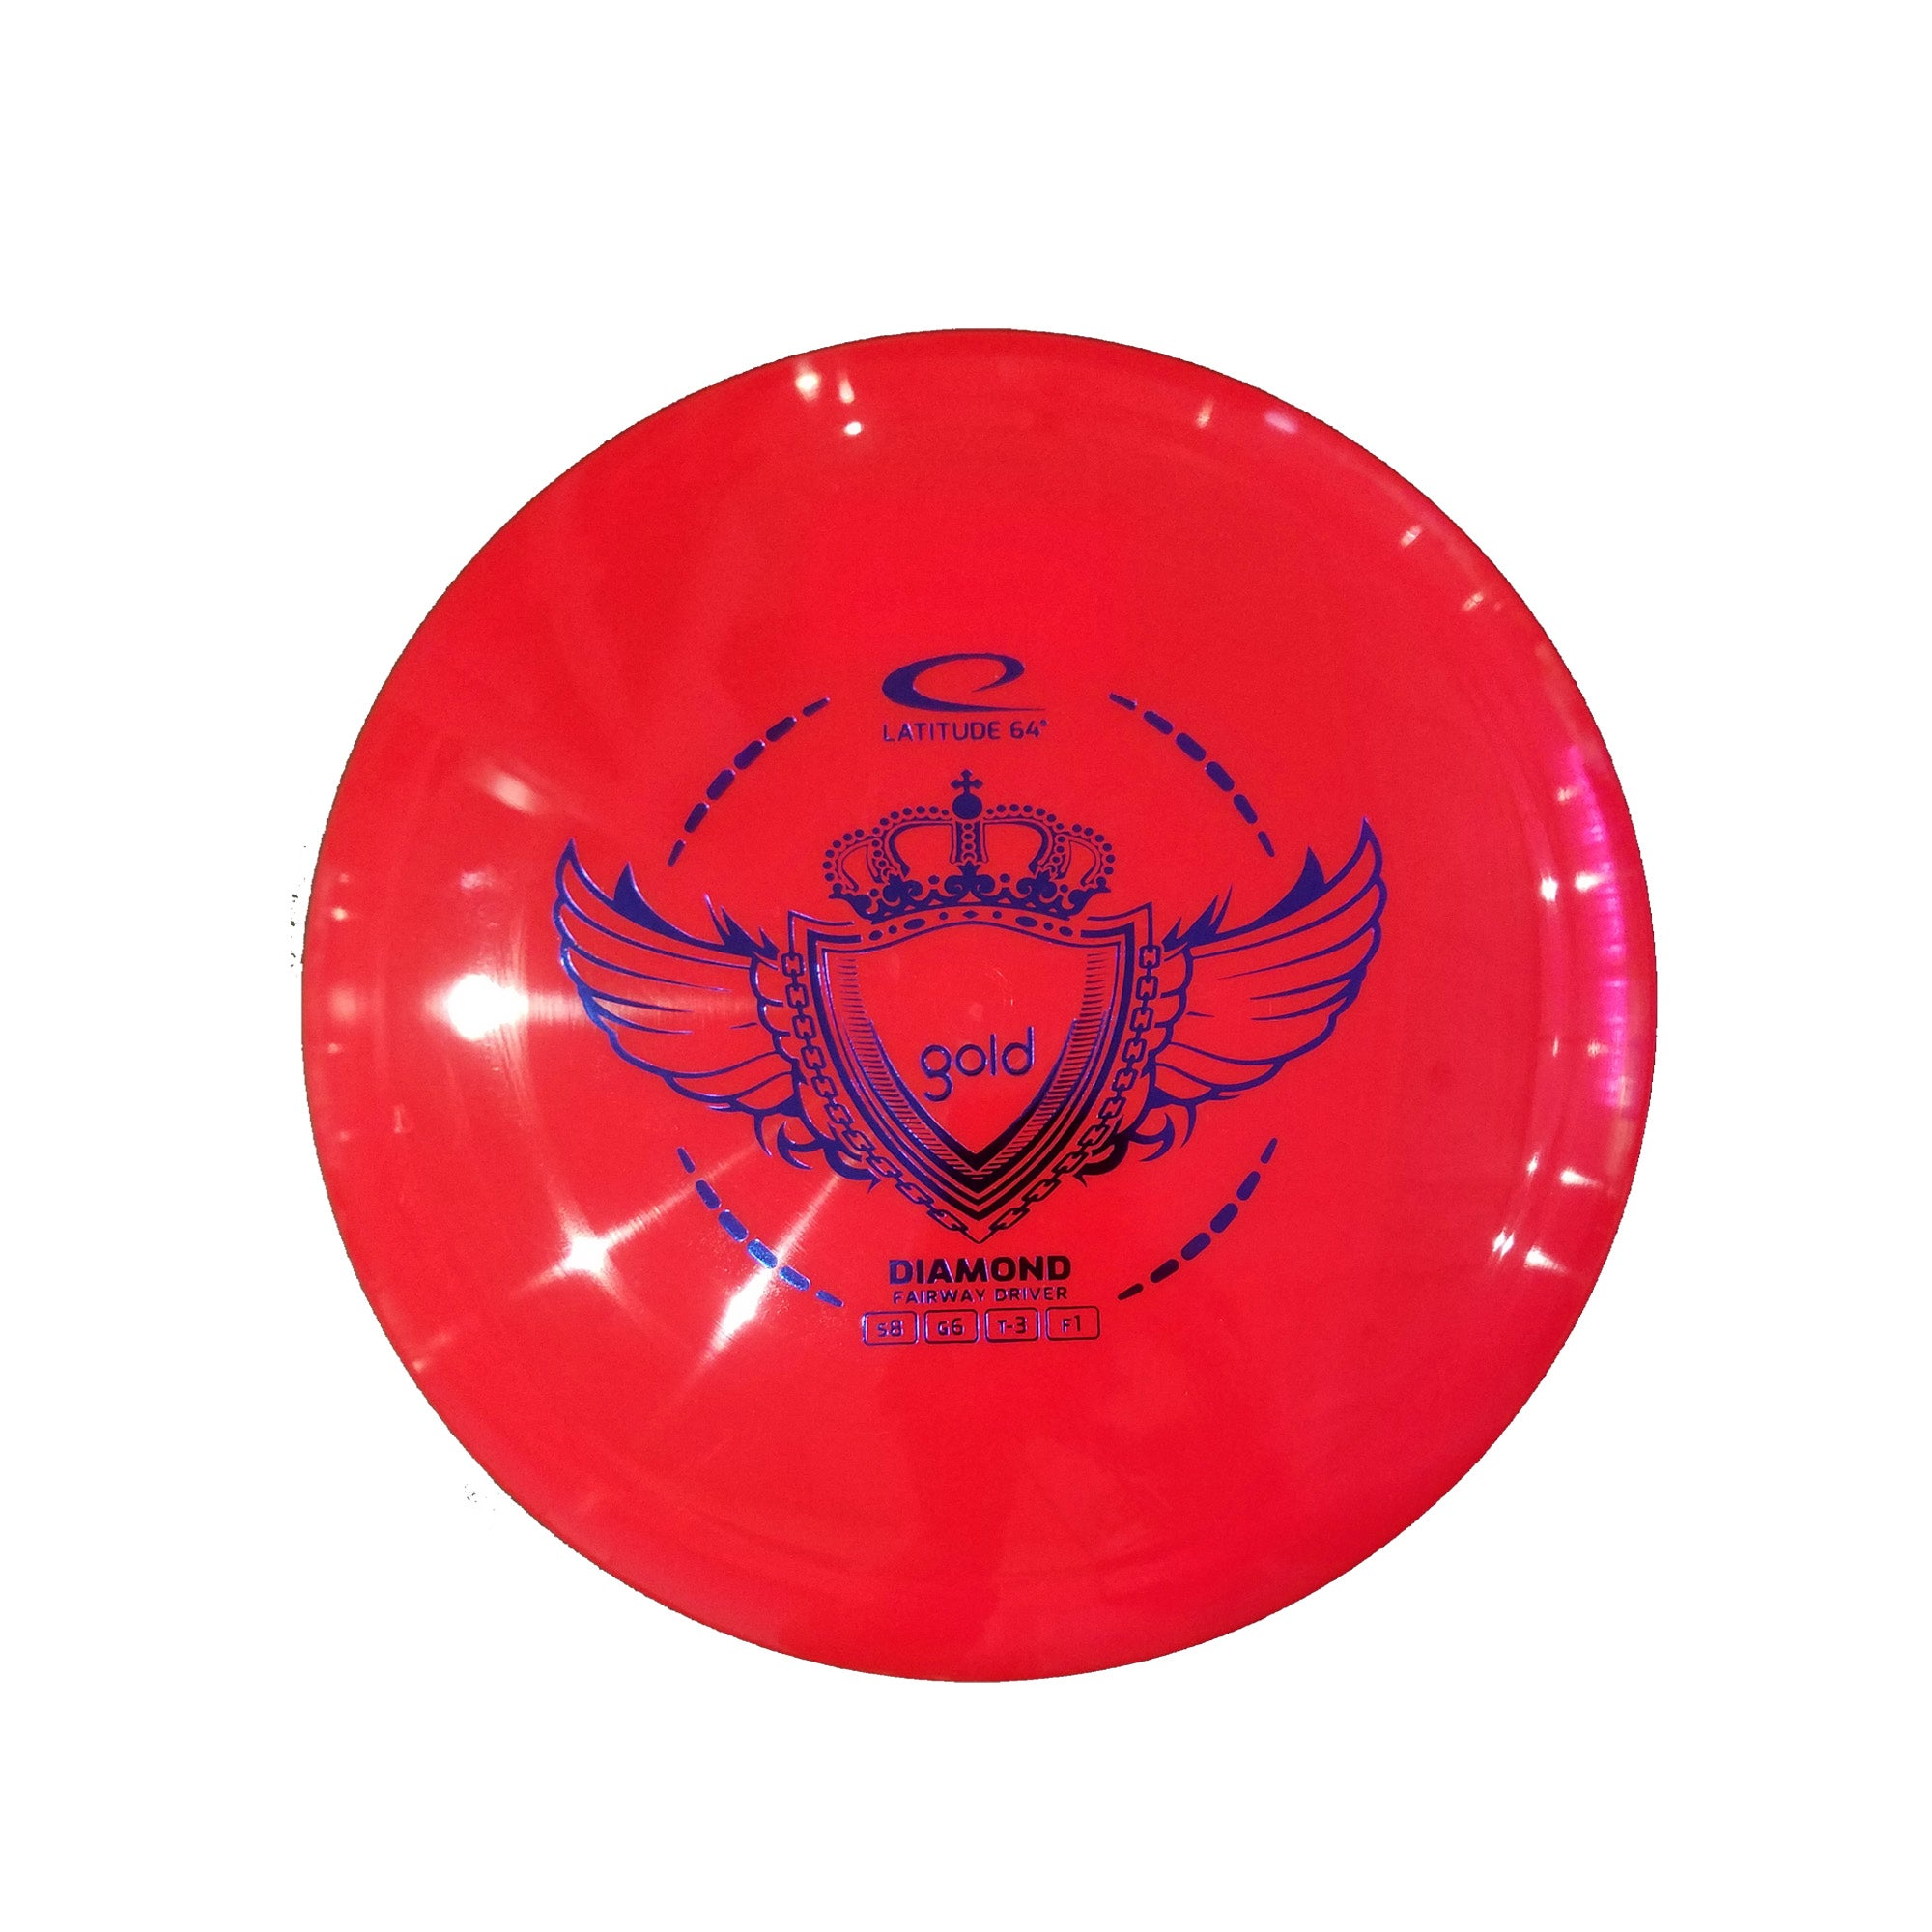 Latitude 64 Gold Diamond Fairway Driver Disc - 156g